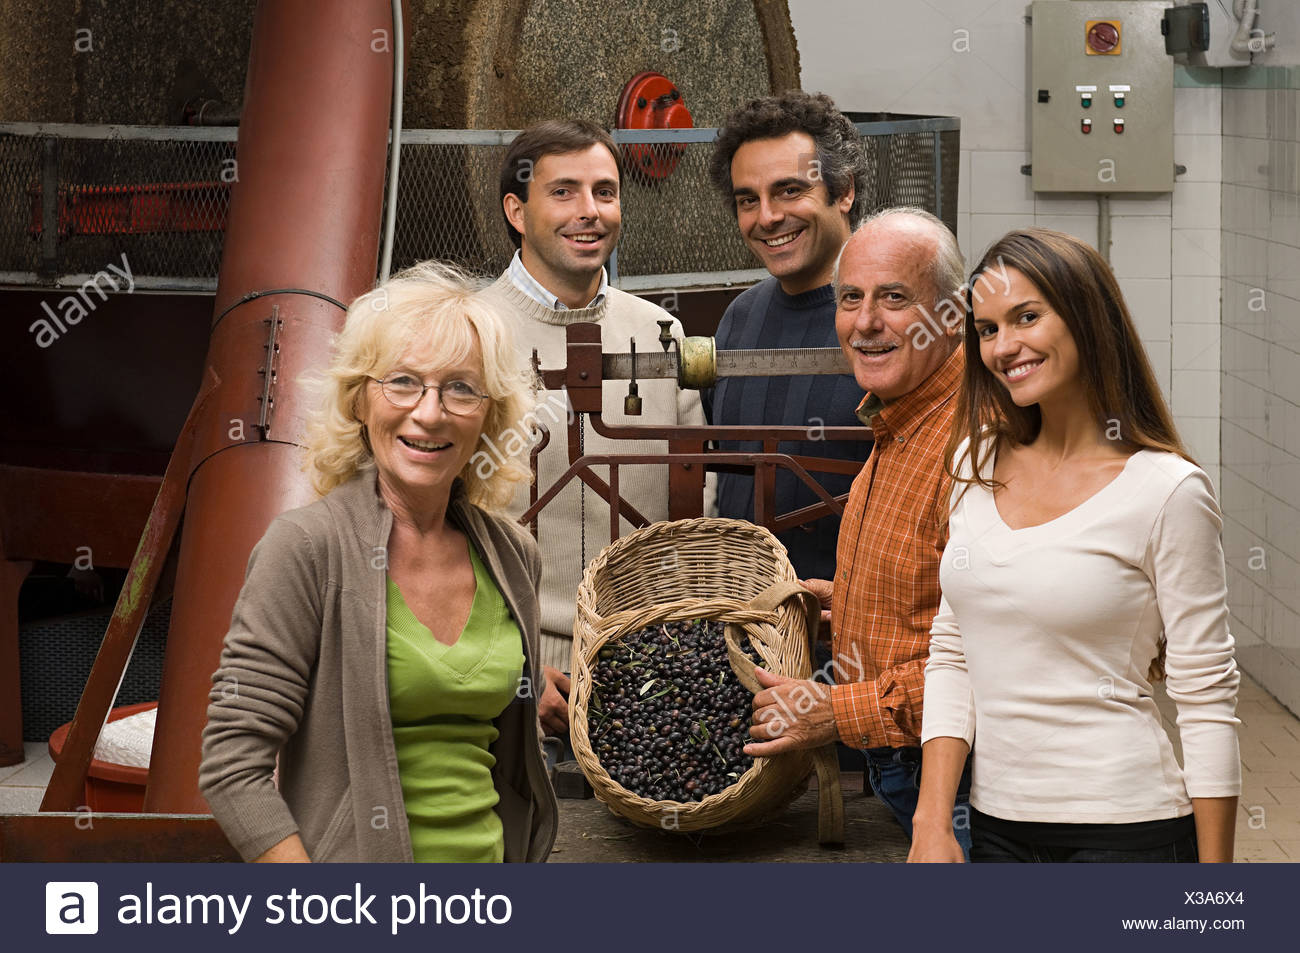 People by olive press - Stock Image